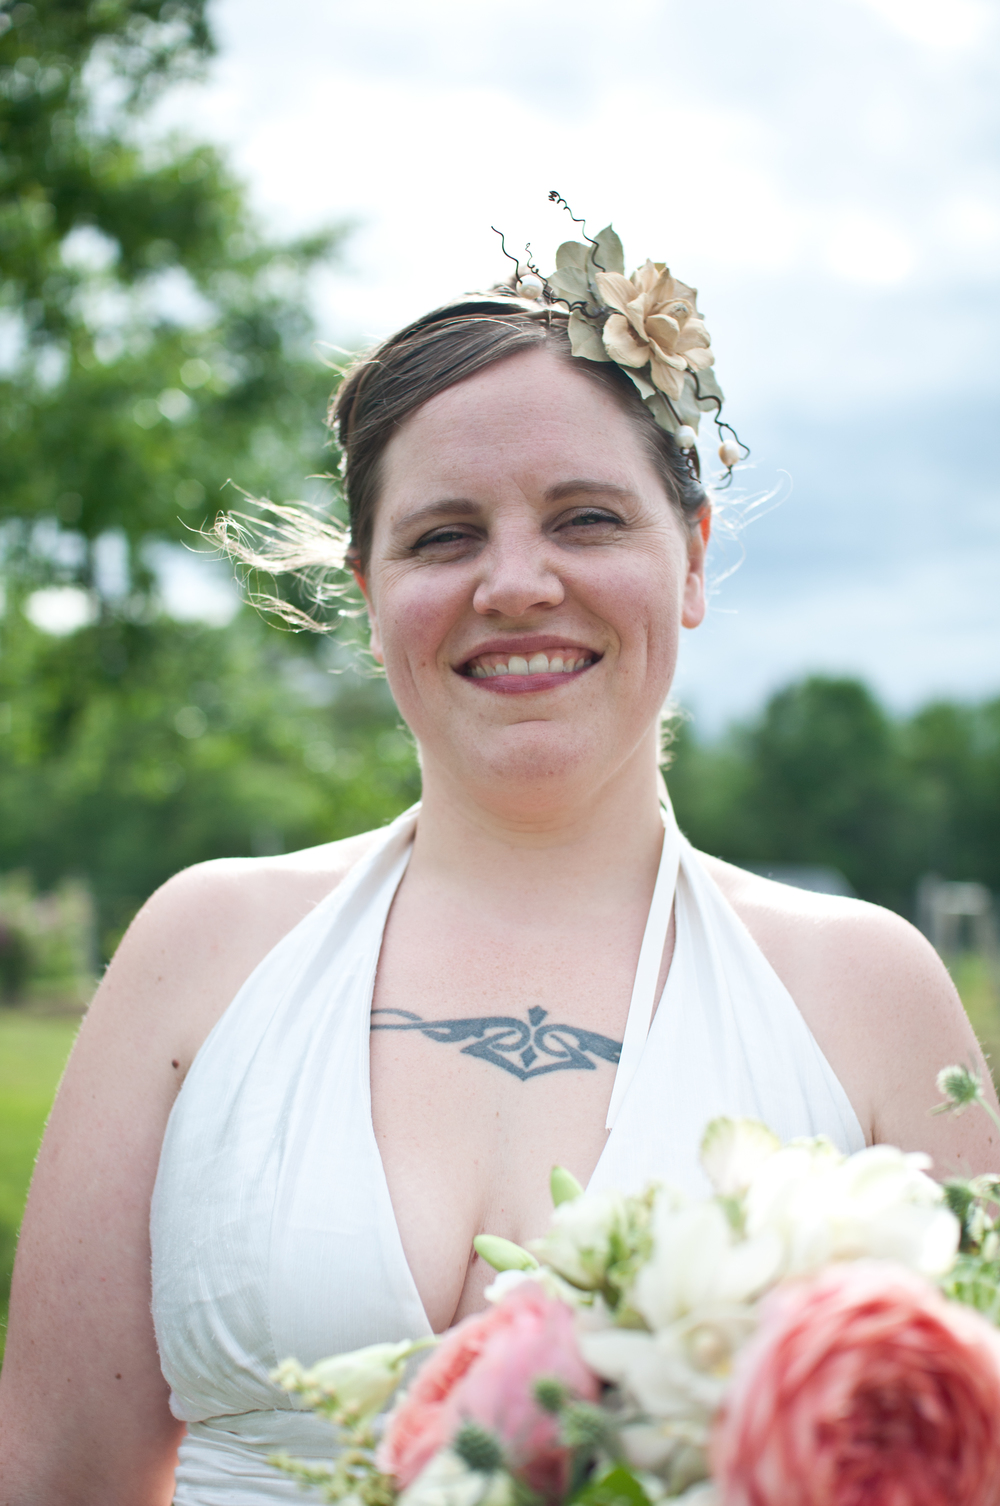 Lincolnville Maine Wedding Officiant